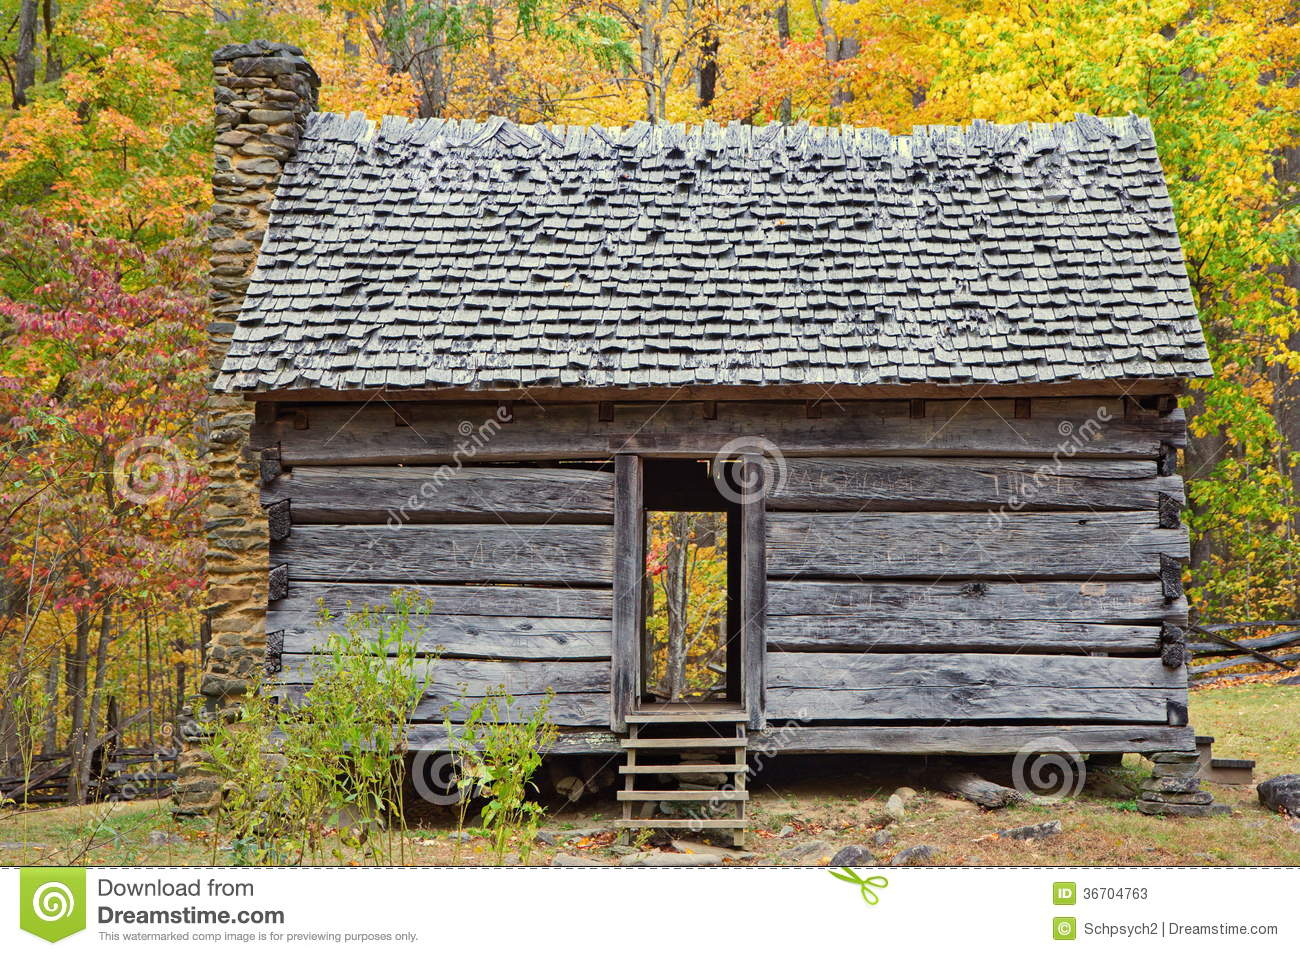 Old One Room Log Cabin During Autumn In Smoky Moun Stock  : old one room log cabin autumn smoky mountains preserved fireplace thatched roof 36704763 from www.dreamstime.com size 1300 x 956 jpeg 319kB